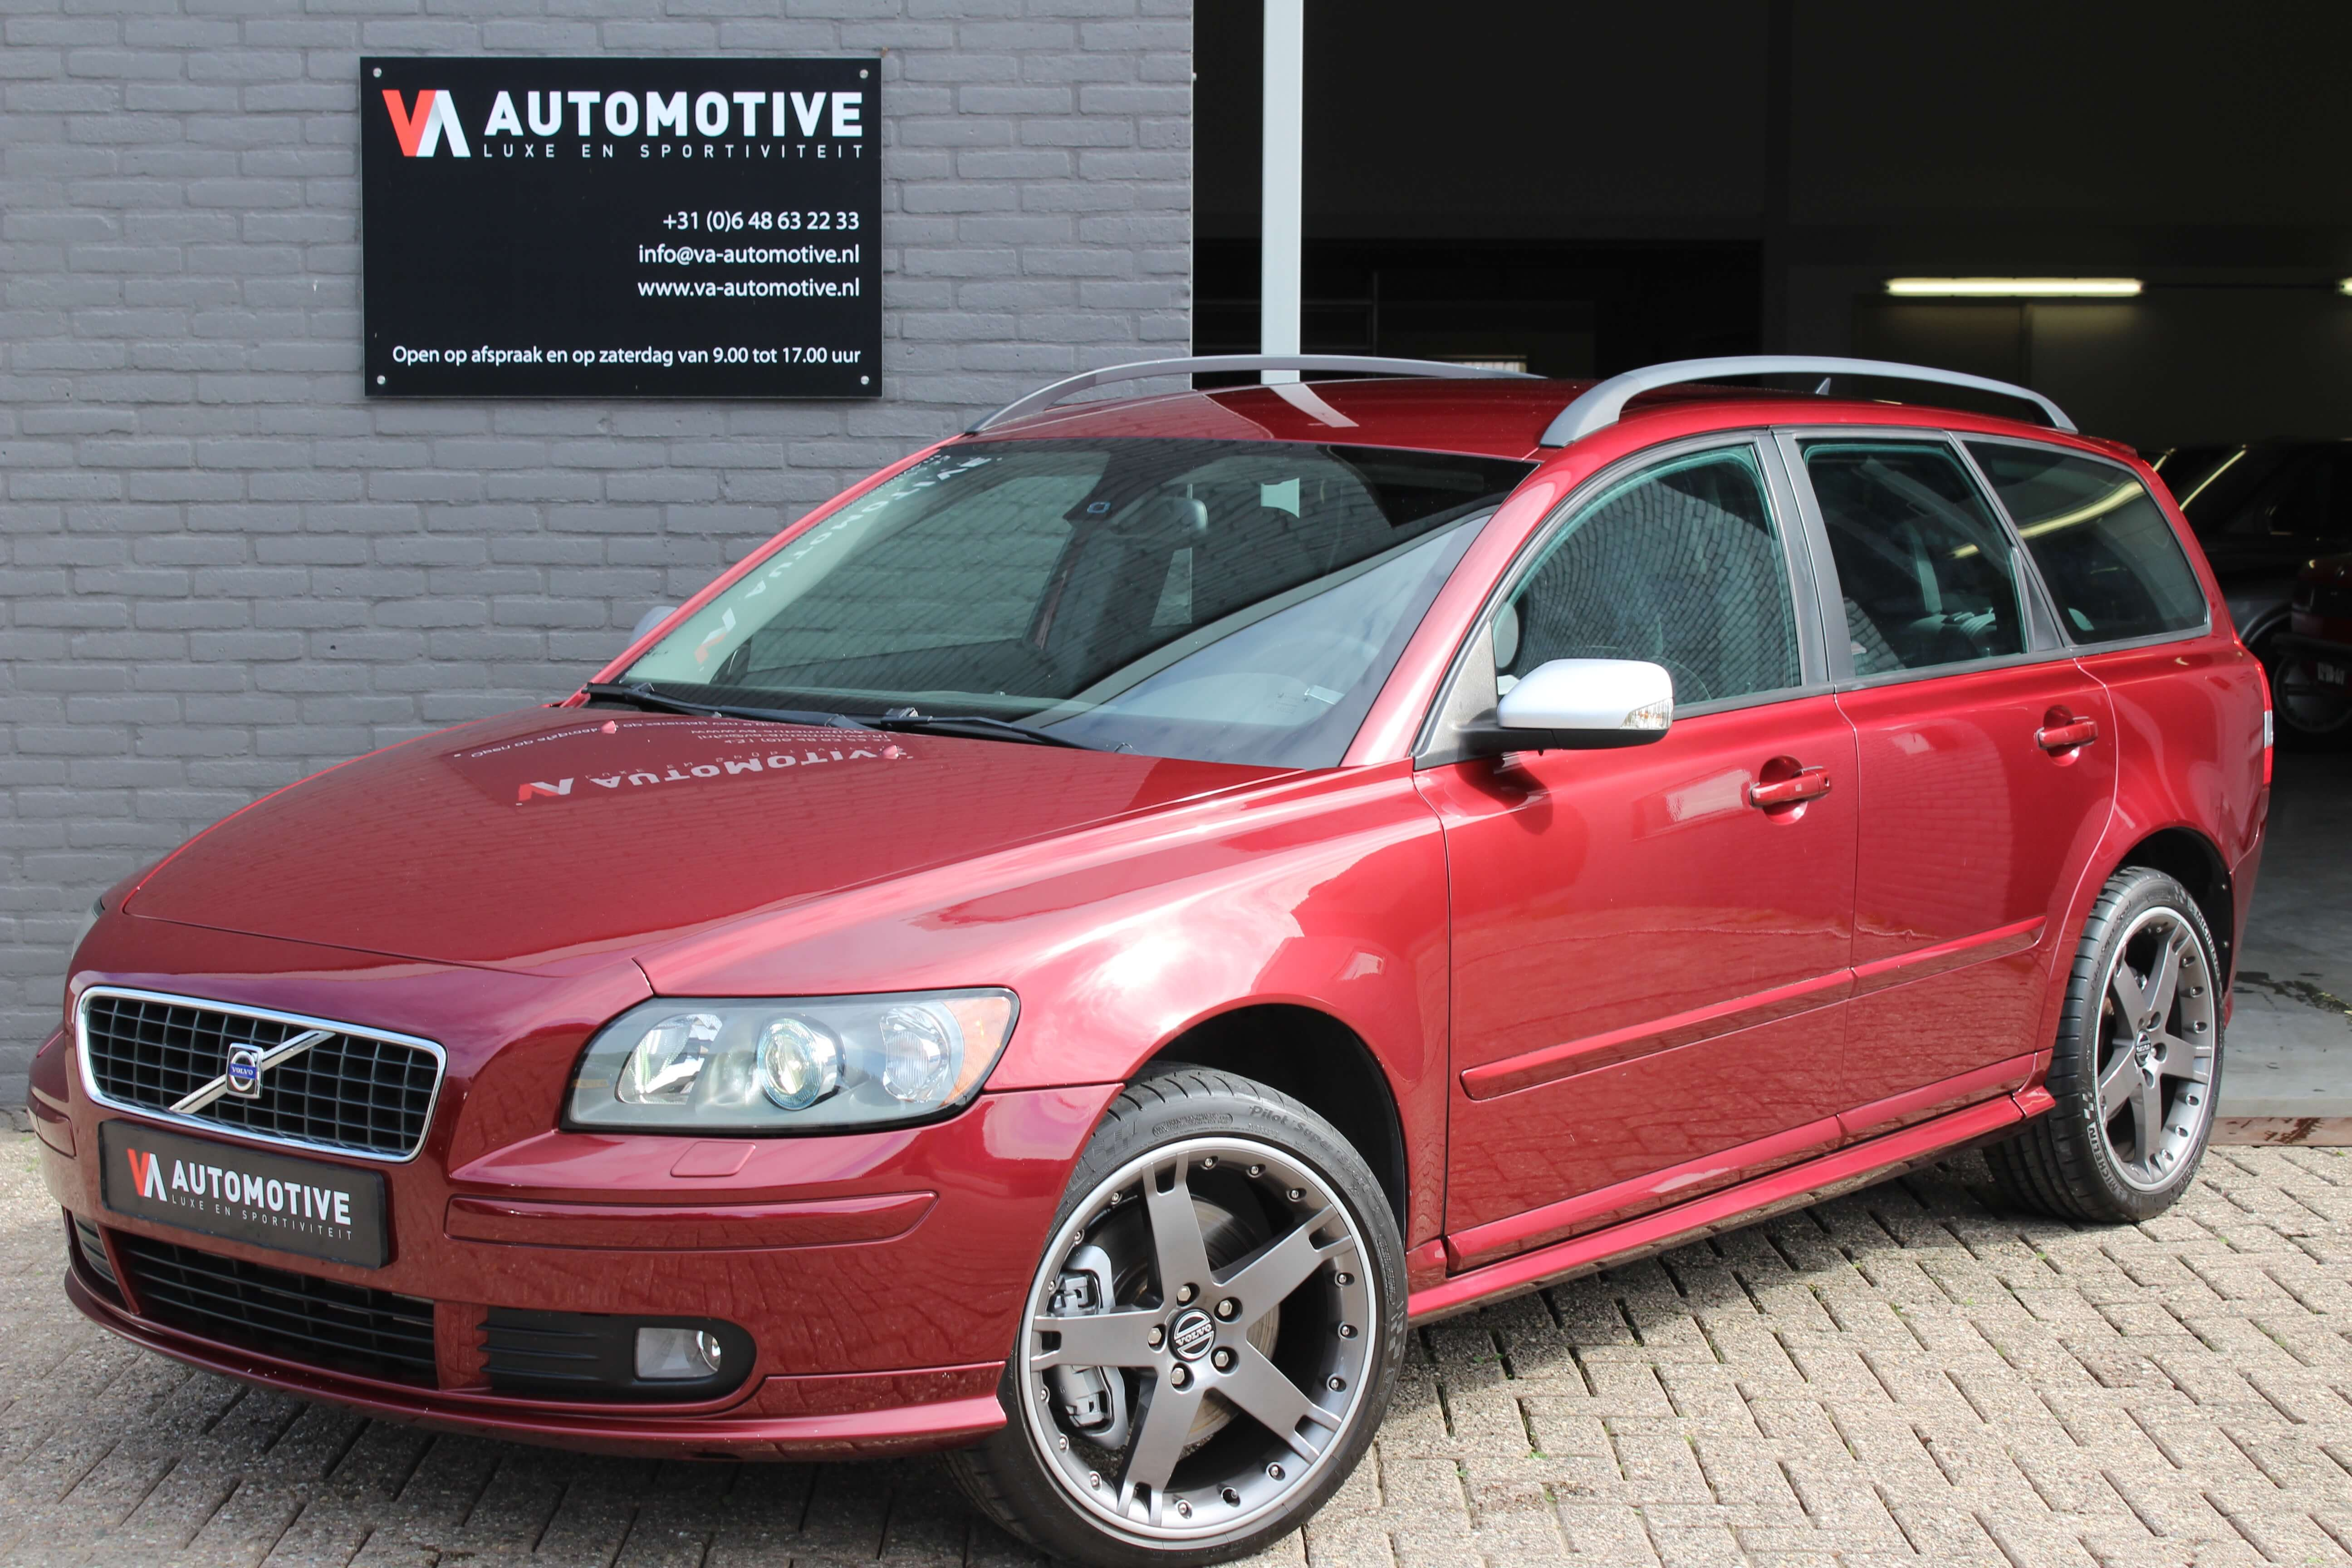 Volvo V50 T5 Va Automotive